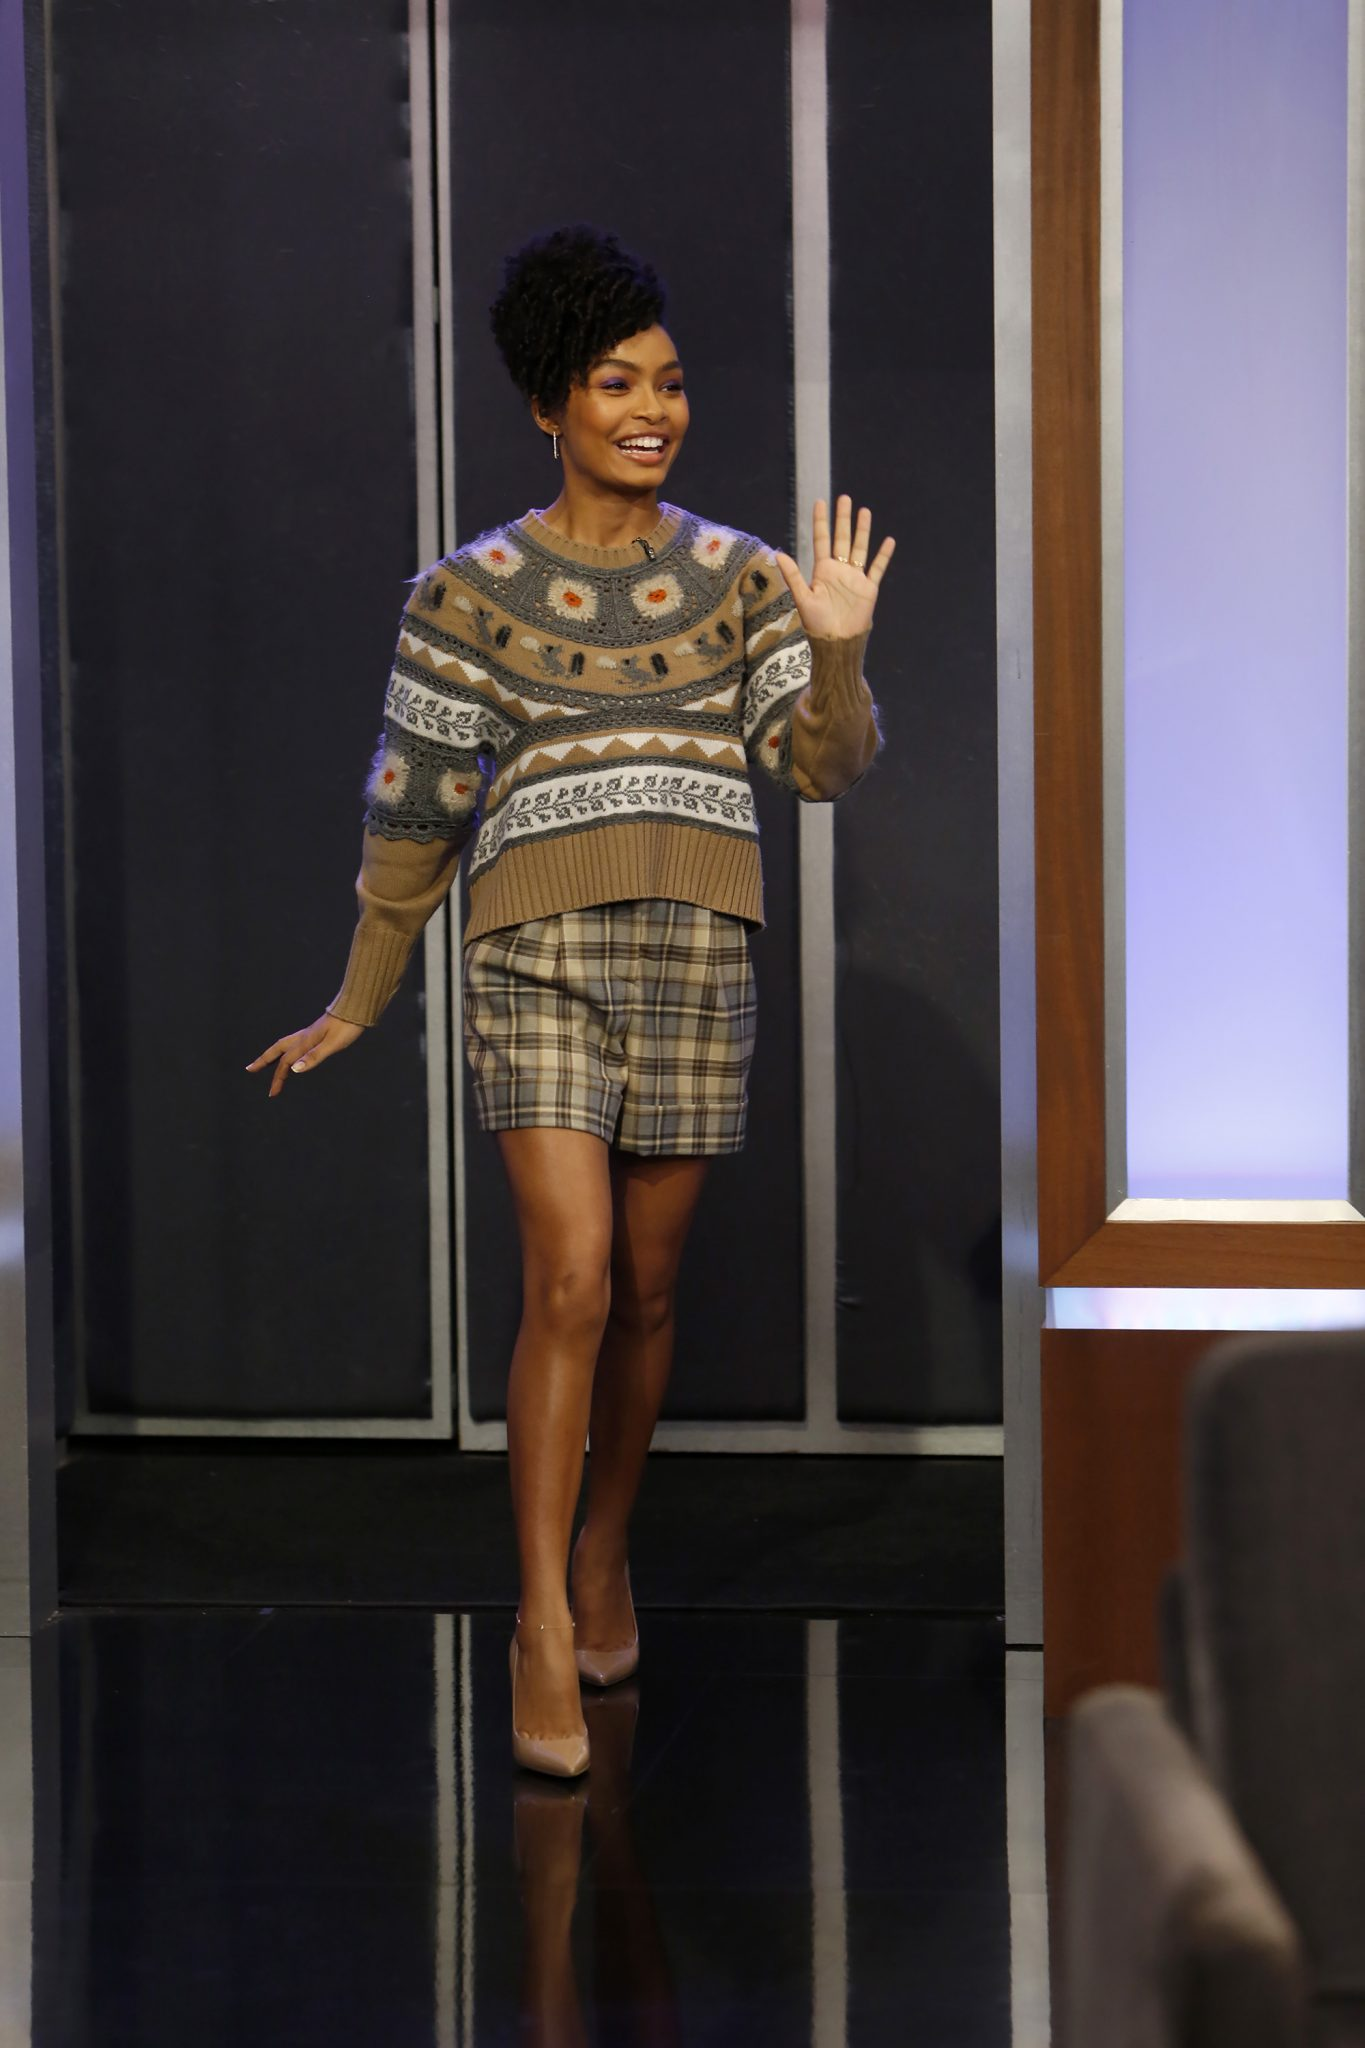 In Case You Missed It: Yara Shahidi On Jimmy Kimmel Live